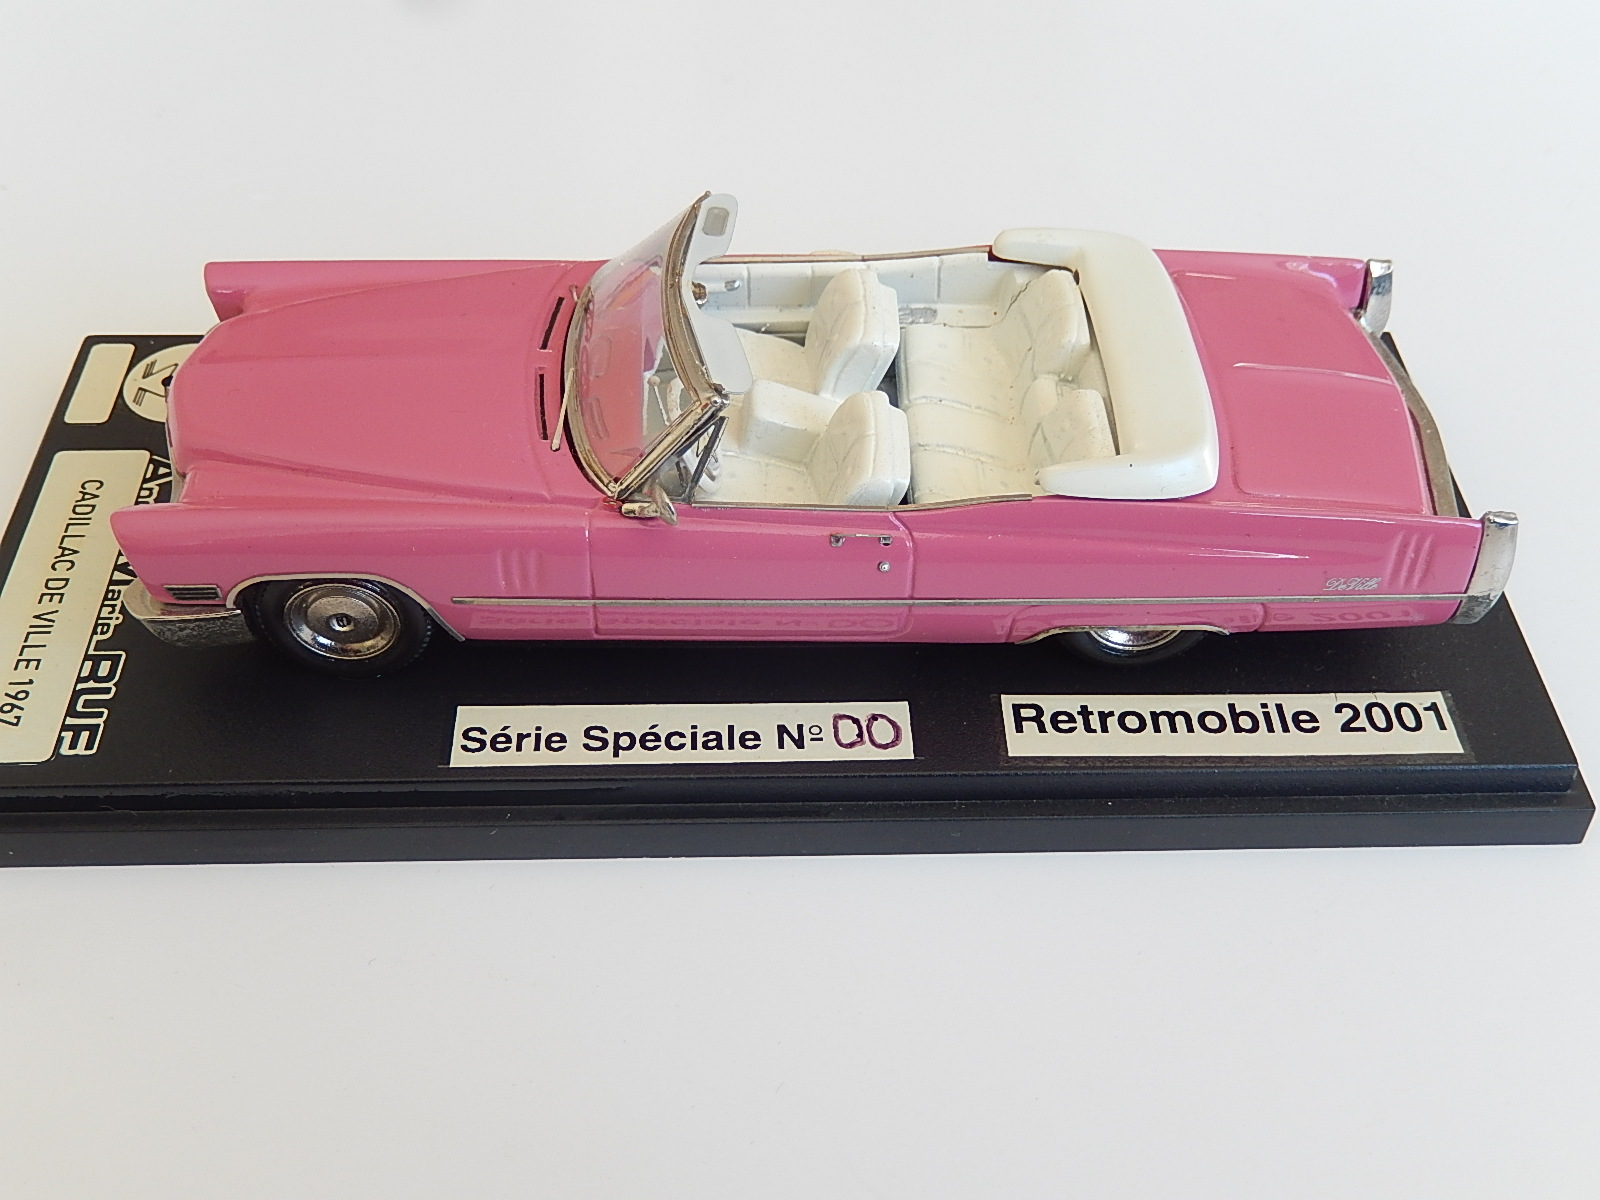 AM Ruf : Cadillac Deville, model of André Marie Ruf -> SOLD